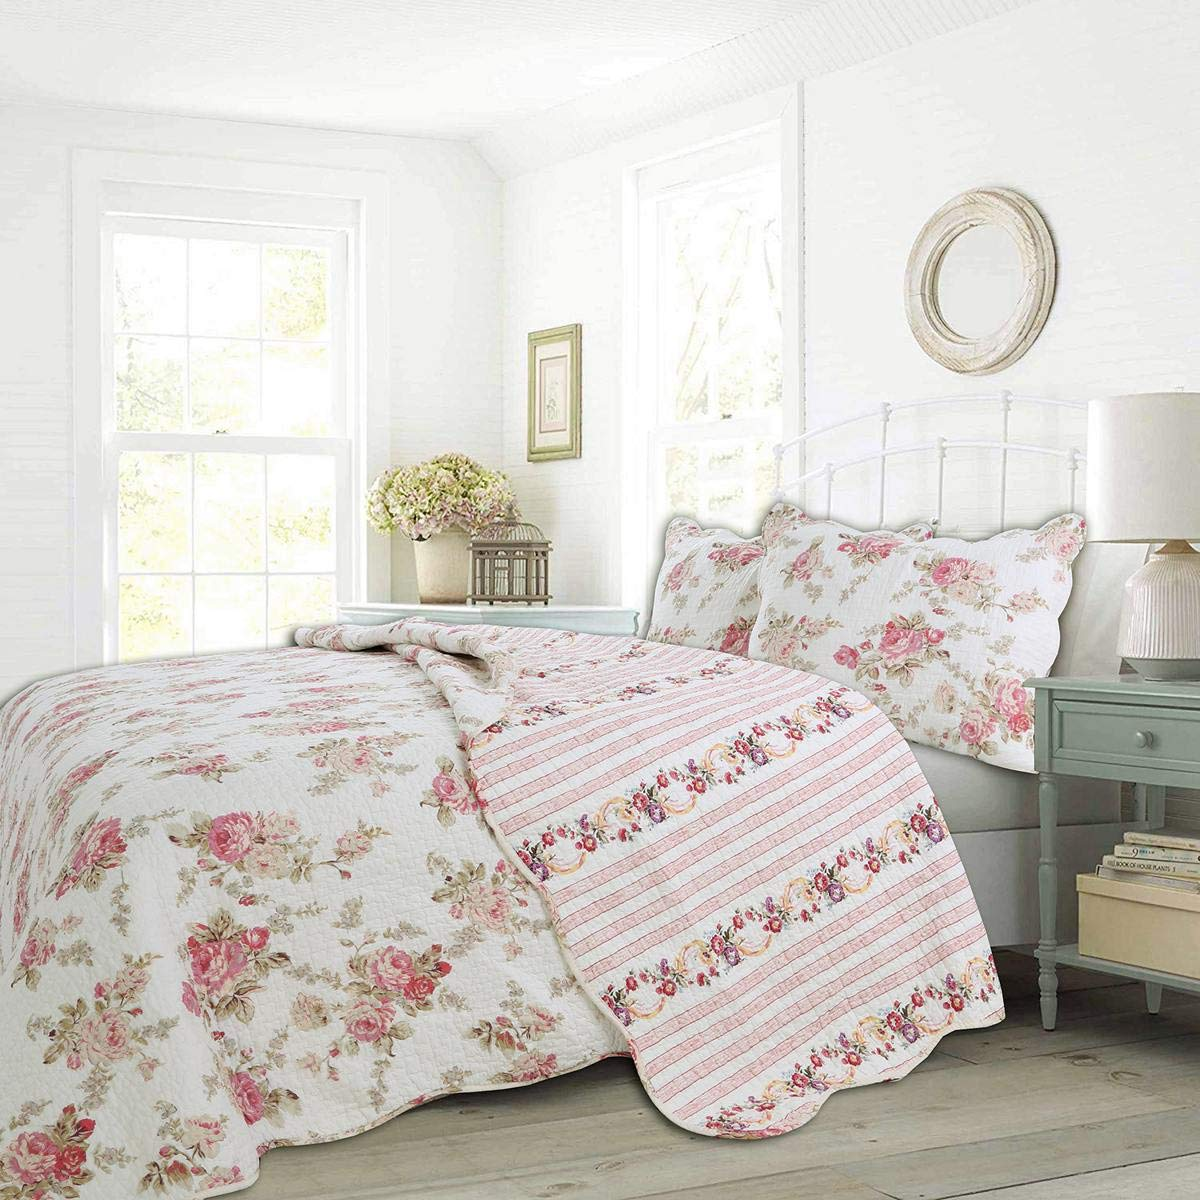 Cozy Line Home Fashions Floral Peony Romantic Pink Ivory Flower Printed 100% Cotton Reversible Coverlet Bedspread Quilt Bedding Set for Women Girl (Pink,Queen - 3 Piece) by Cozy Line Home Fashions